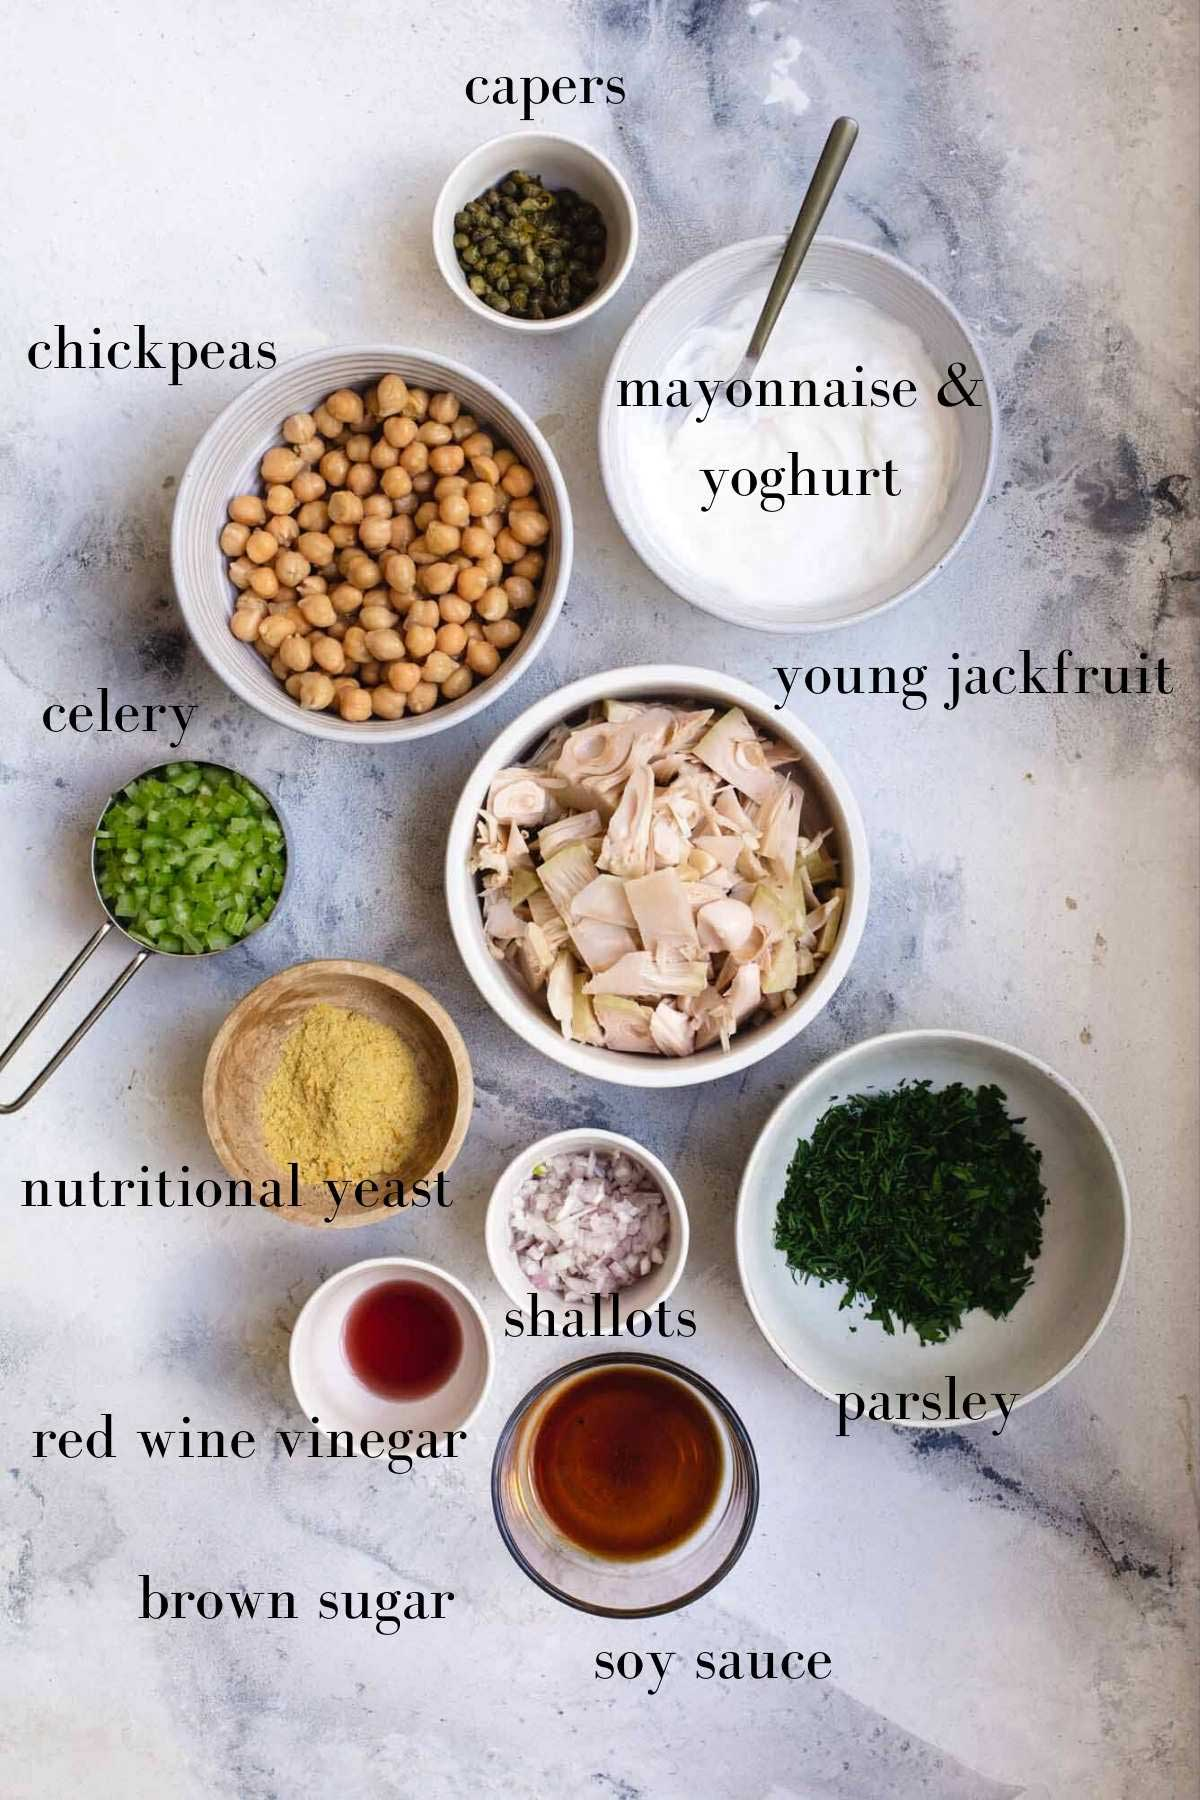 Ingredients for a vegan chicken salad in bowls on a marble background with labels.